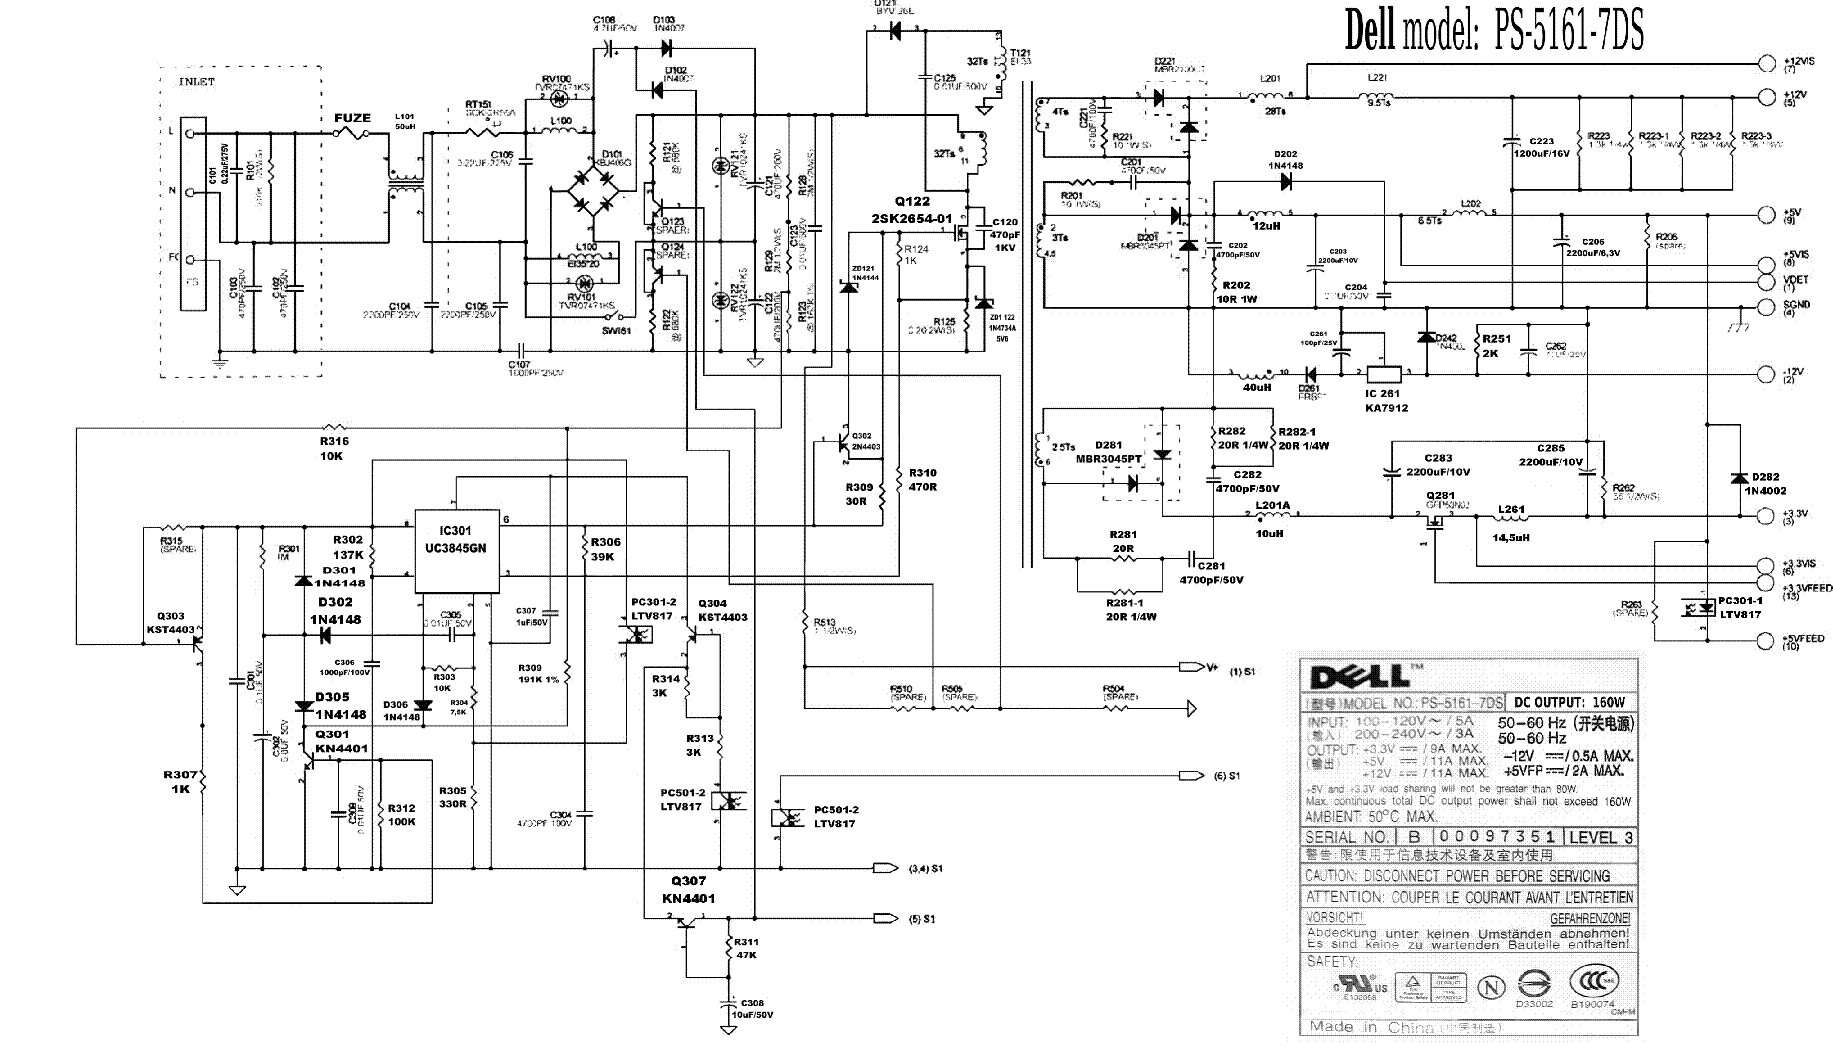 DELL PA-12 HA65NS1-00 REV.A01 SMPS SCH Service Manual